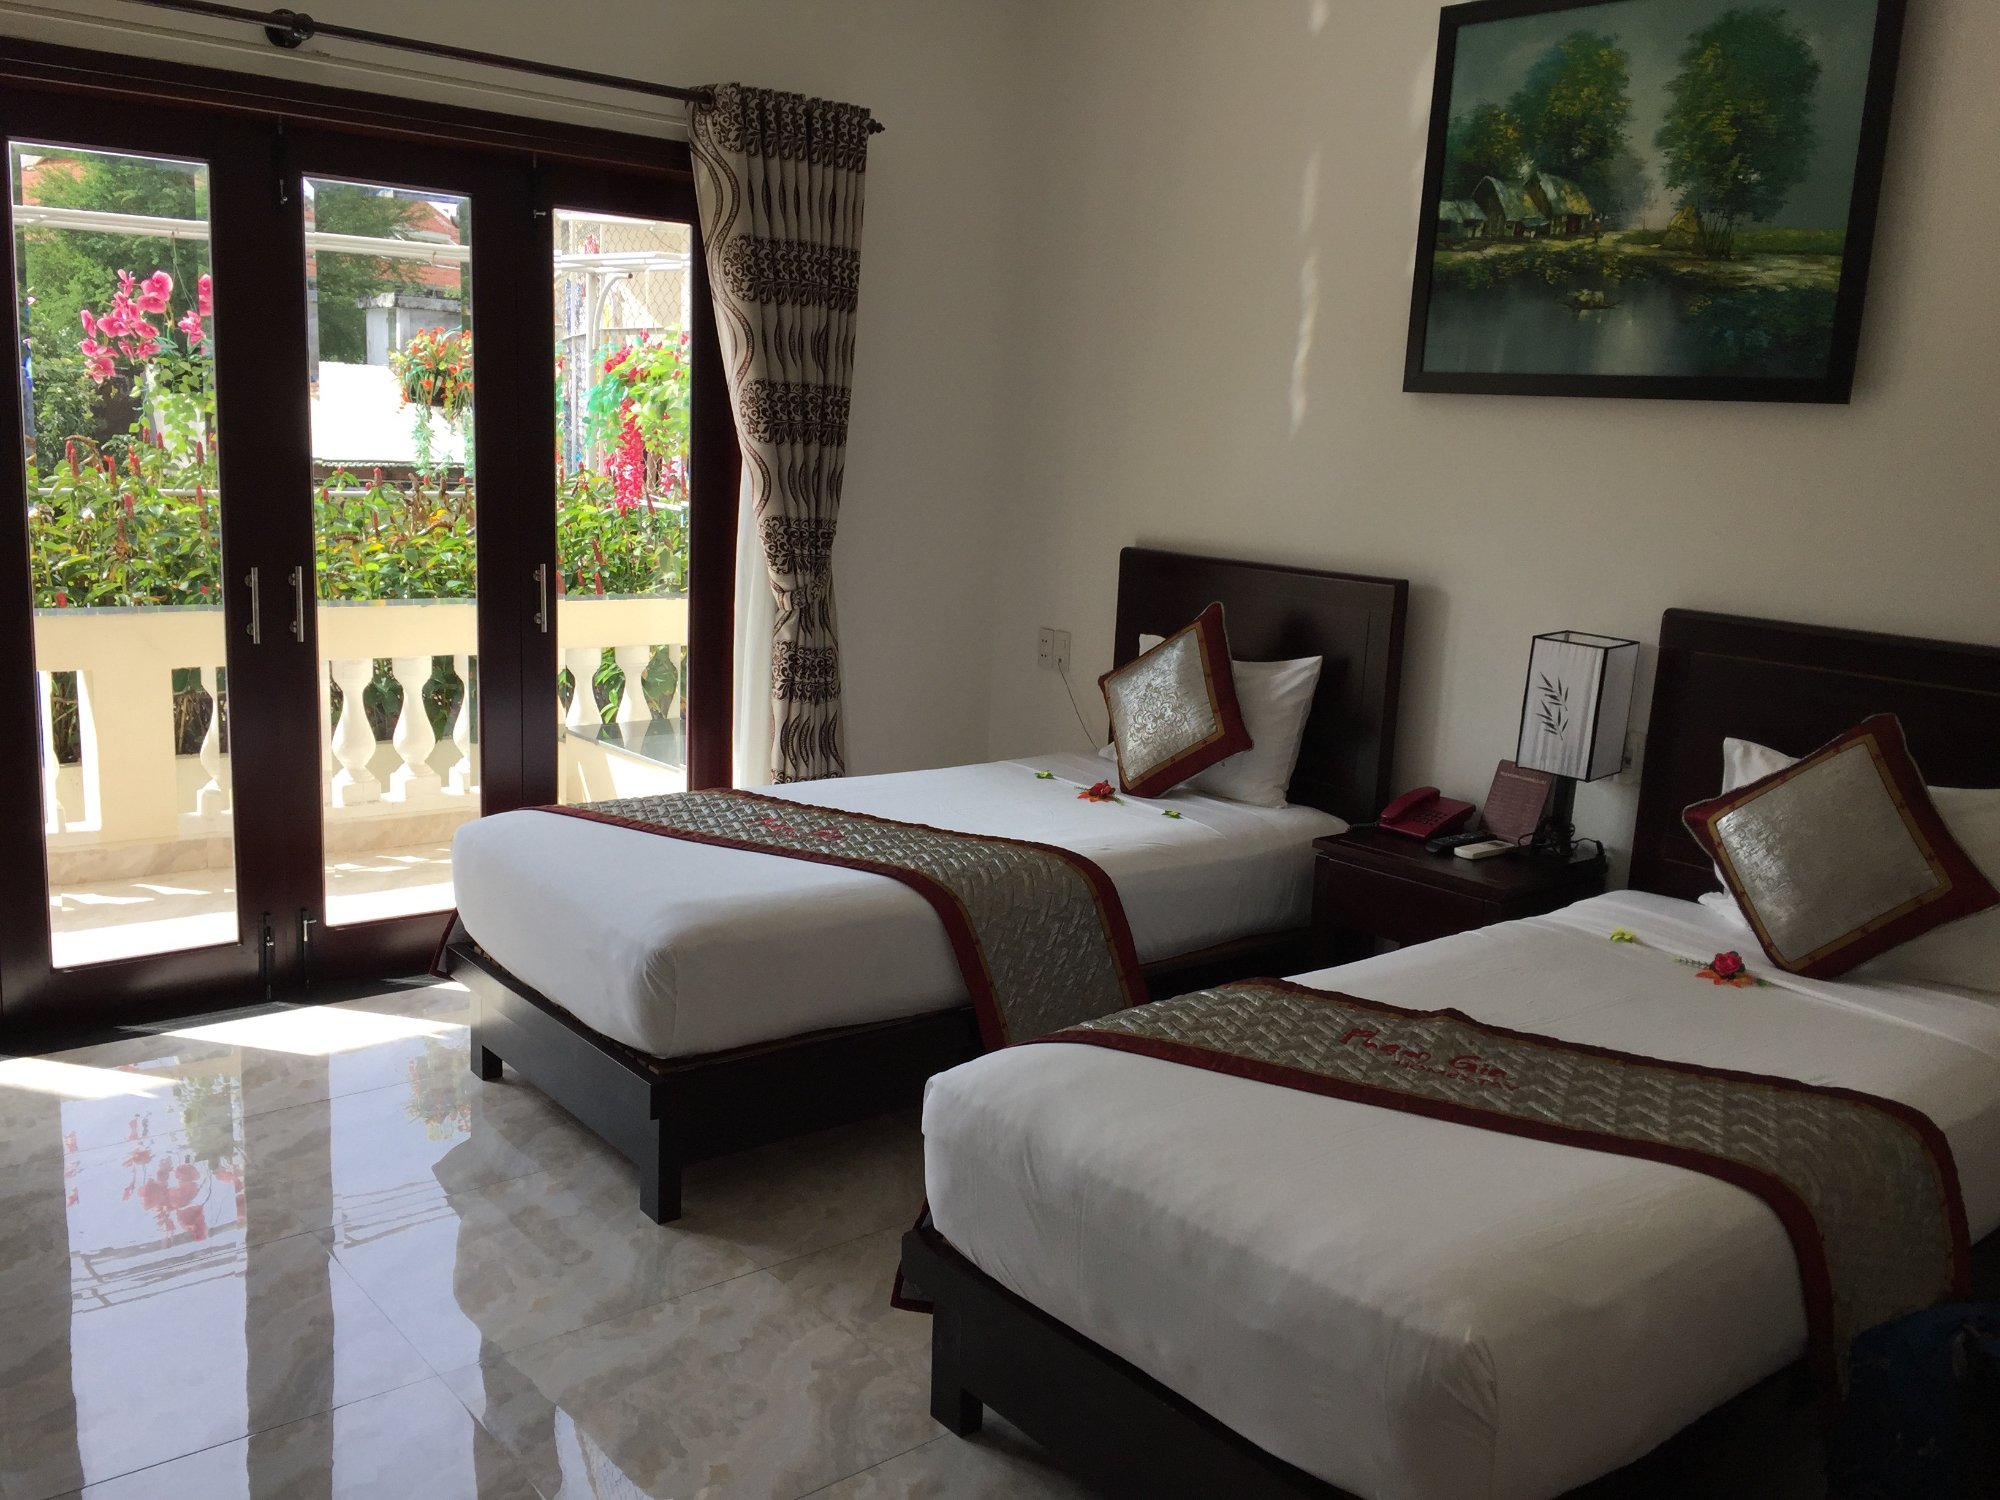 Image from go852/TripAdvisor